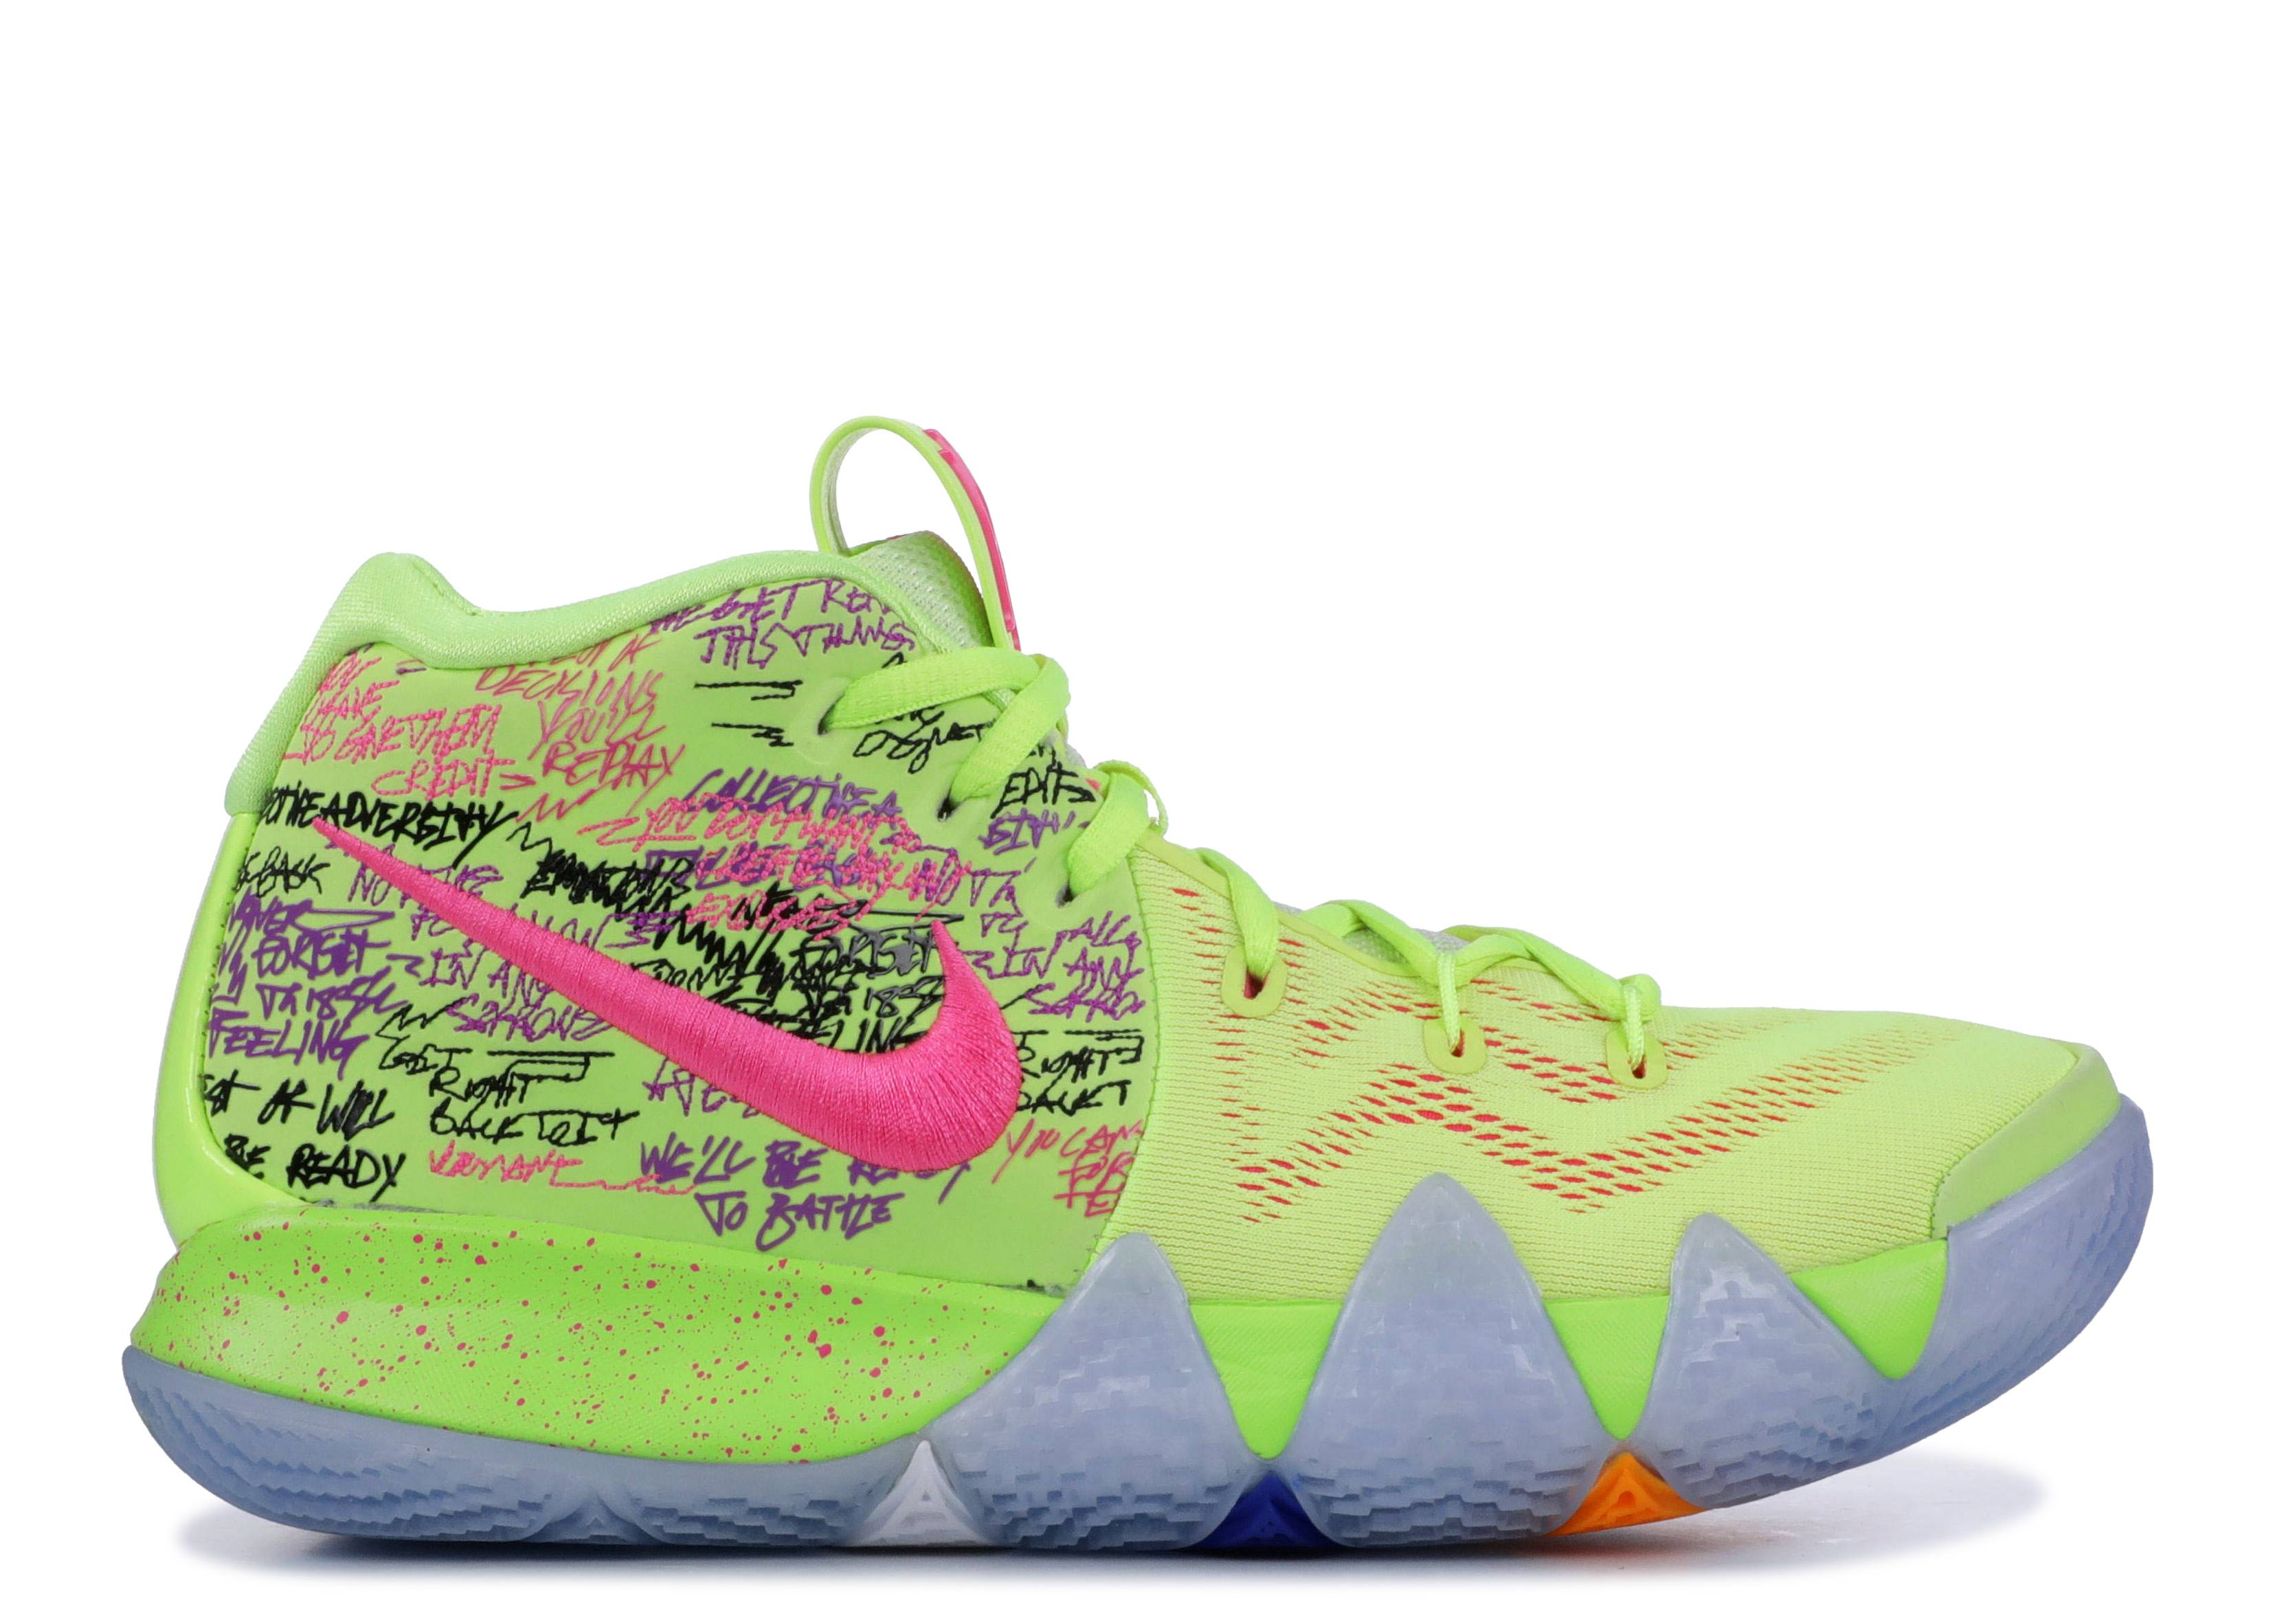 best website 4ed4f 29ad1 Kyrie 4 Ep